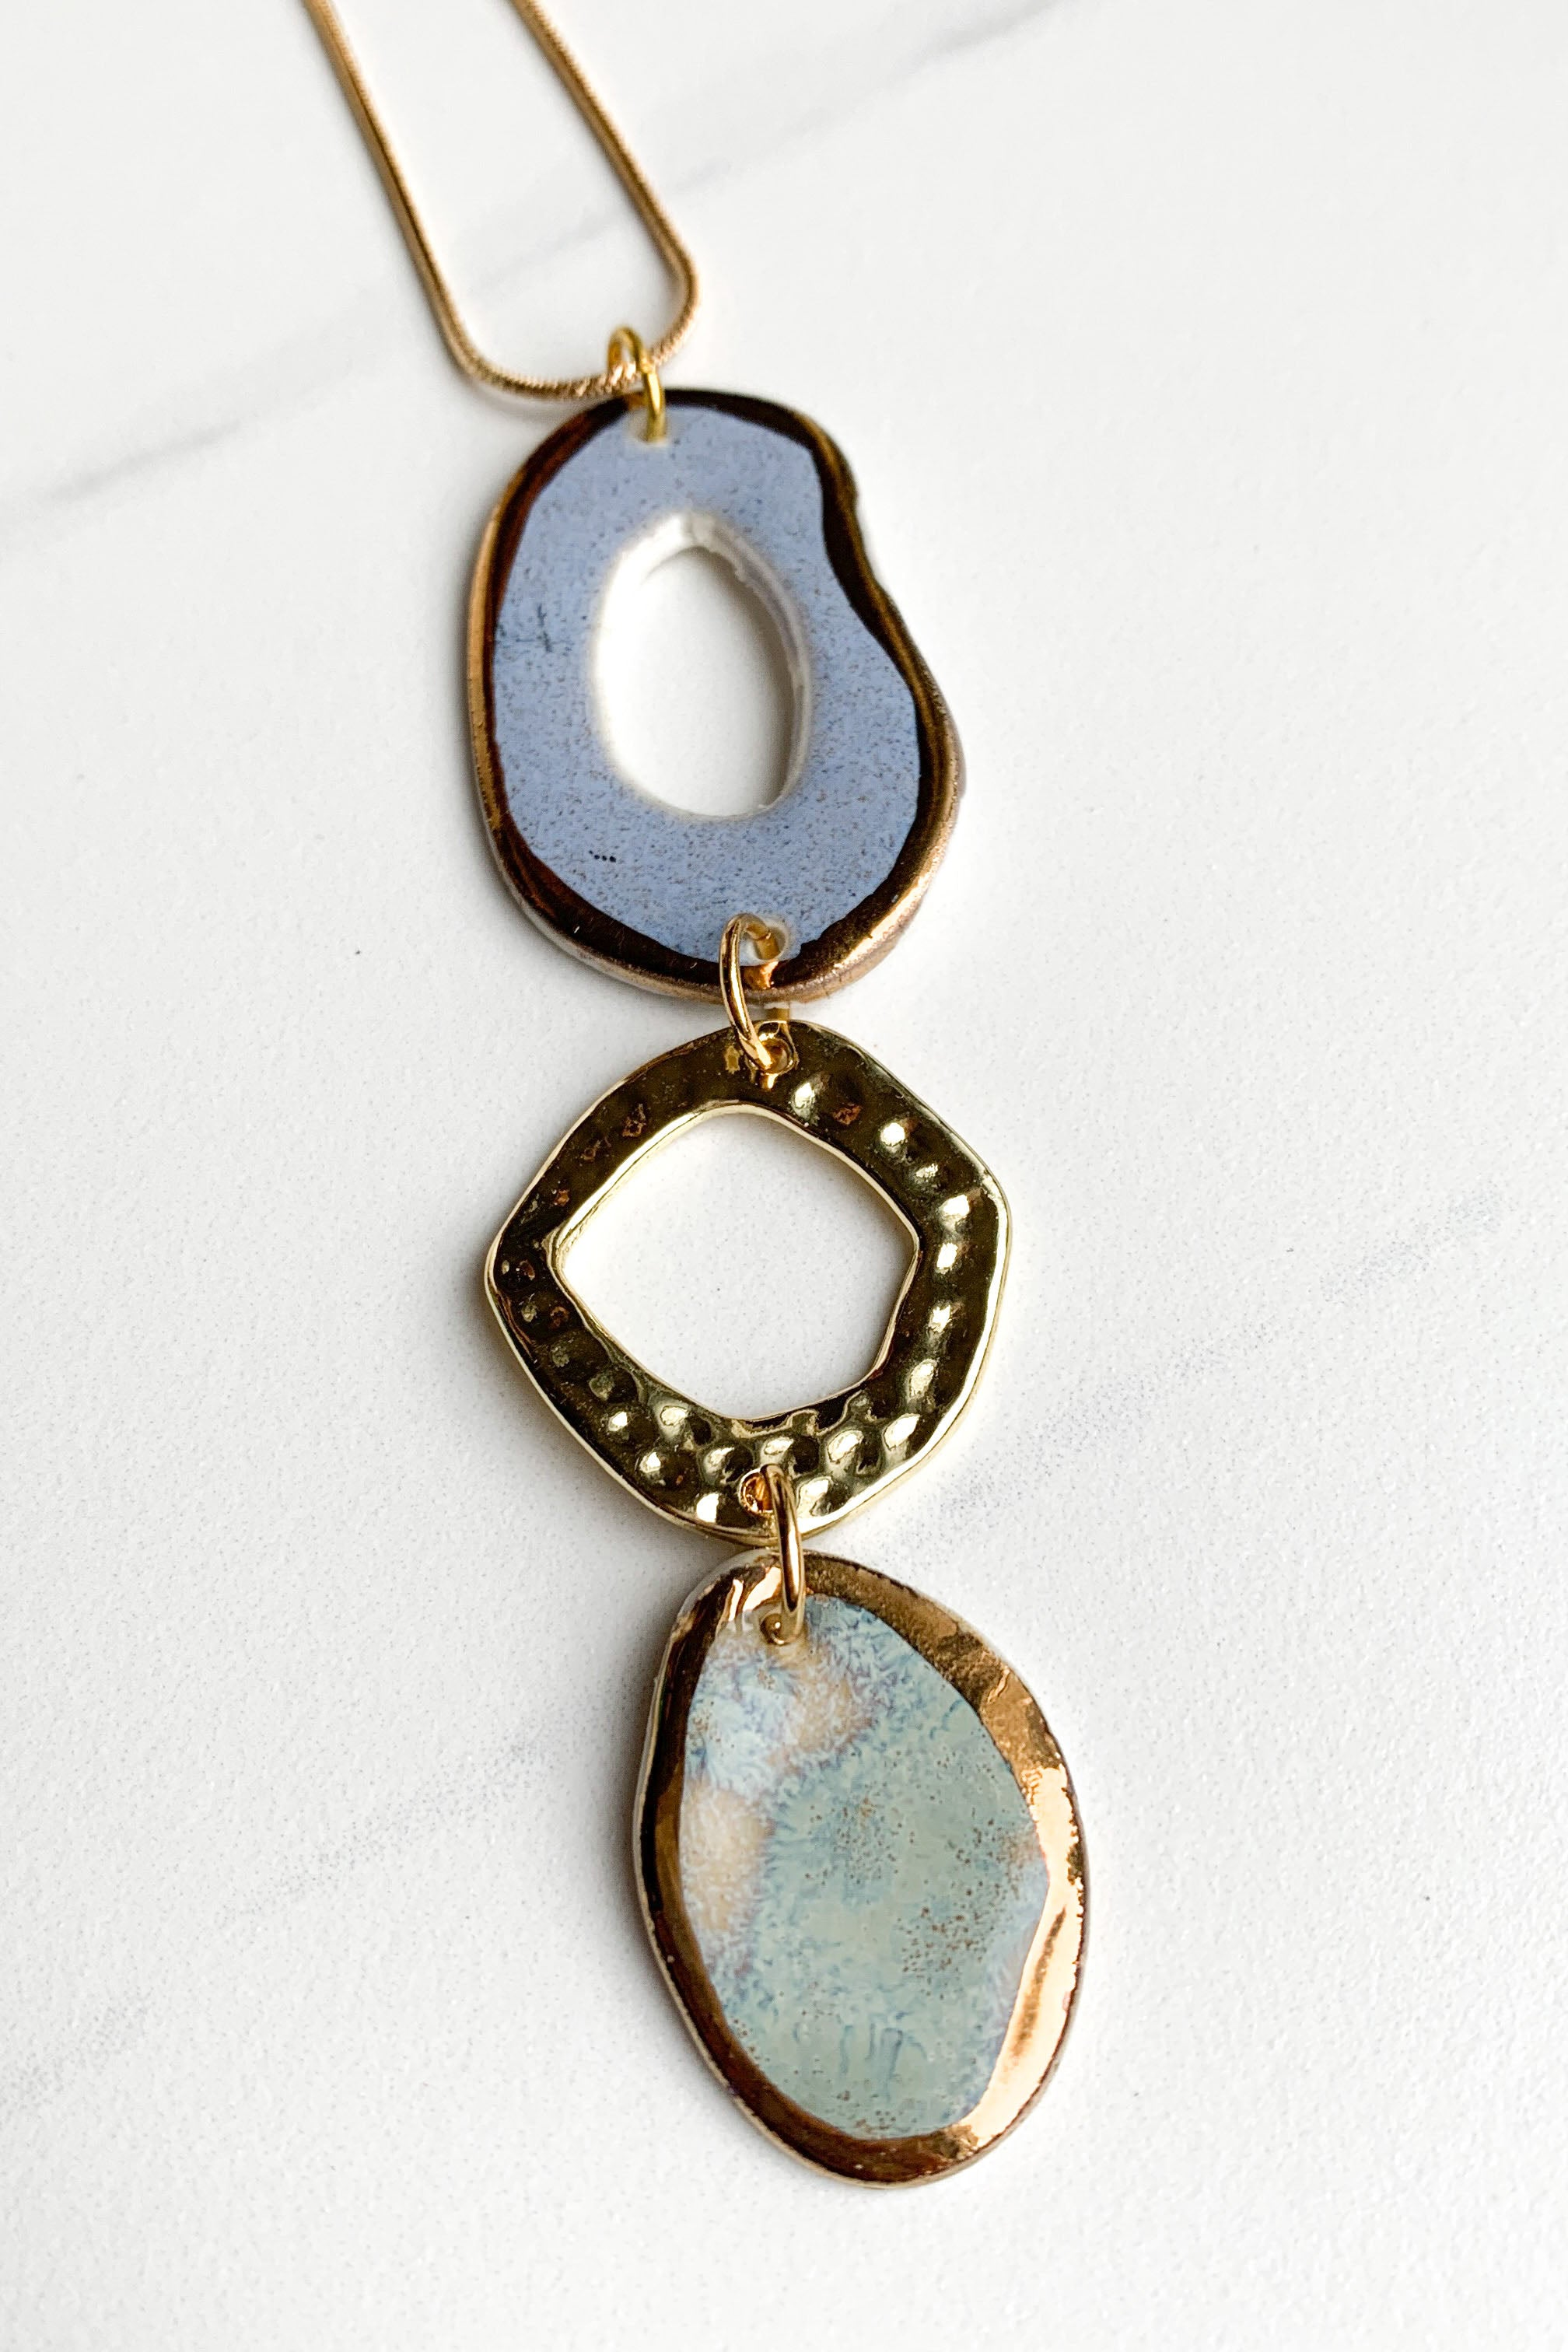 Porcelain Lavender and Blue-Grey Abstract Oval Necklace and Gold Attachment